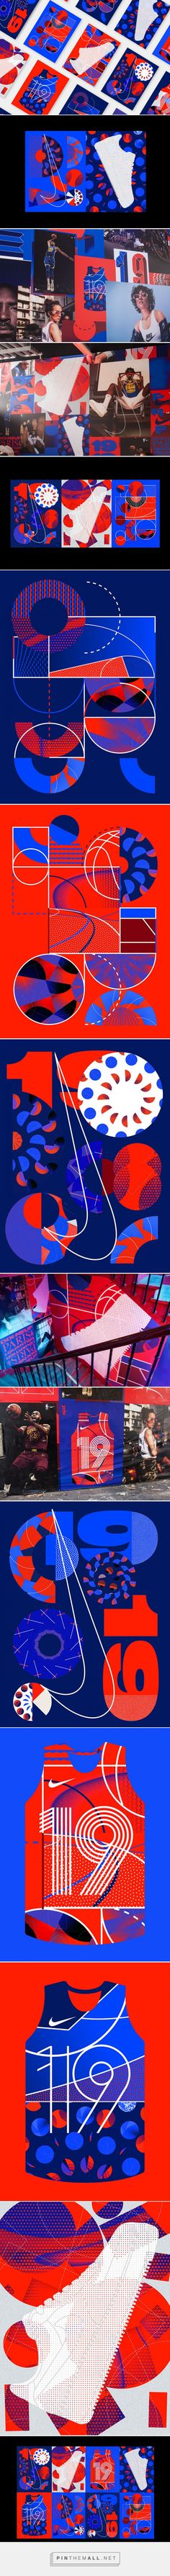 Nike Le Quartier on Behance... - a grouped images picture - Pin Them All